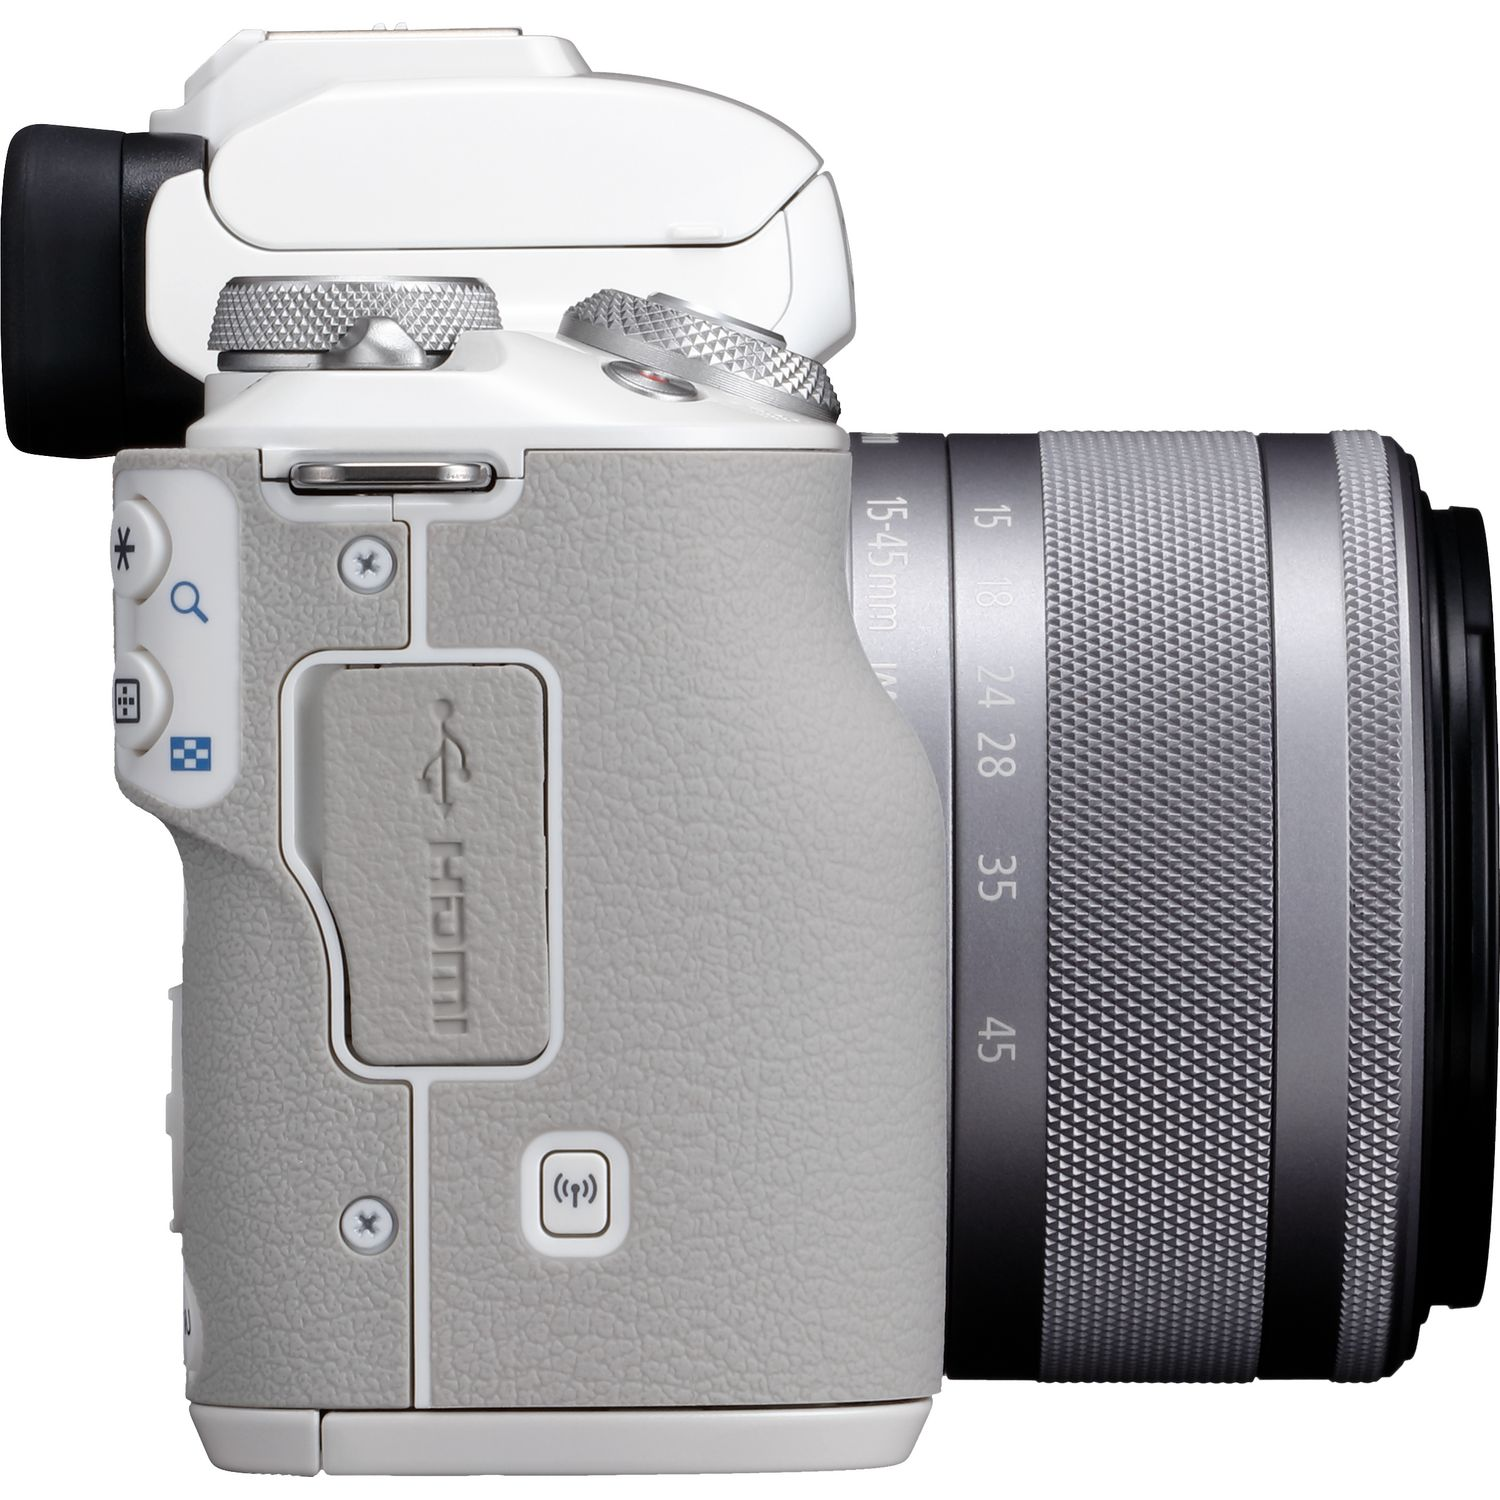 Buy Canon EOS M50 White + EF-M 15-45mm IS STM Lens Silver in